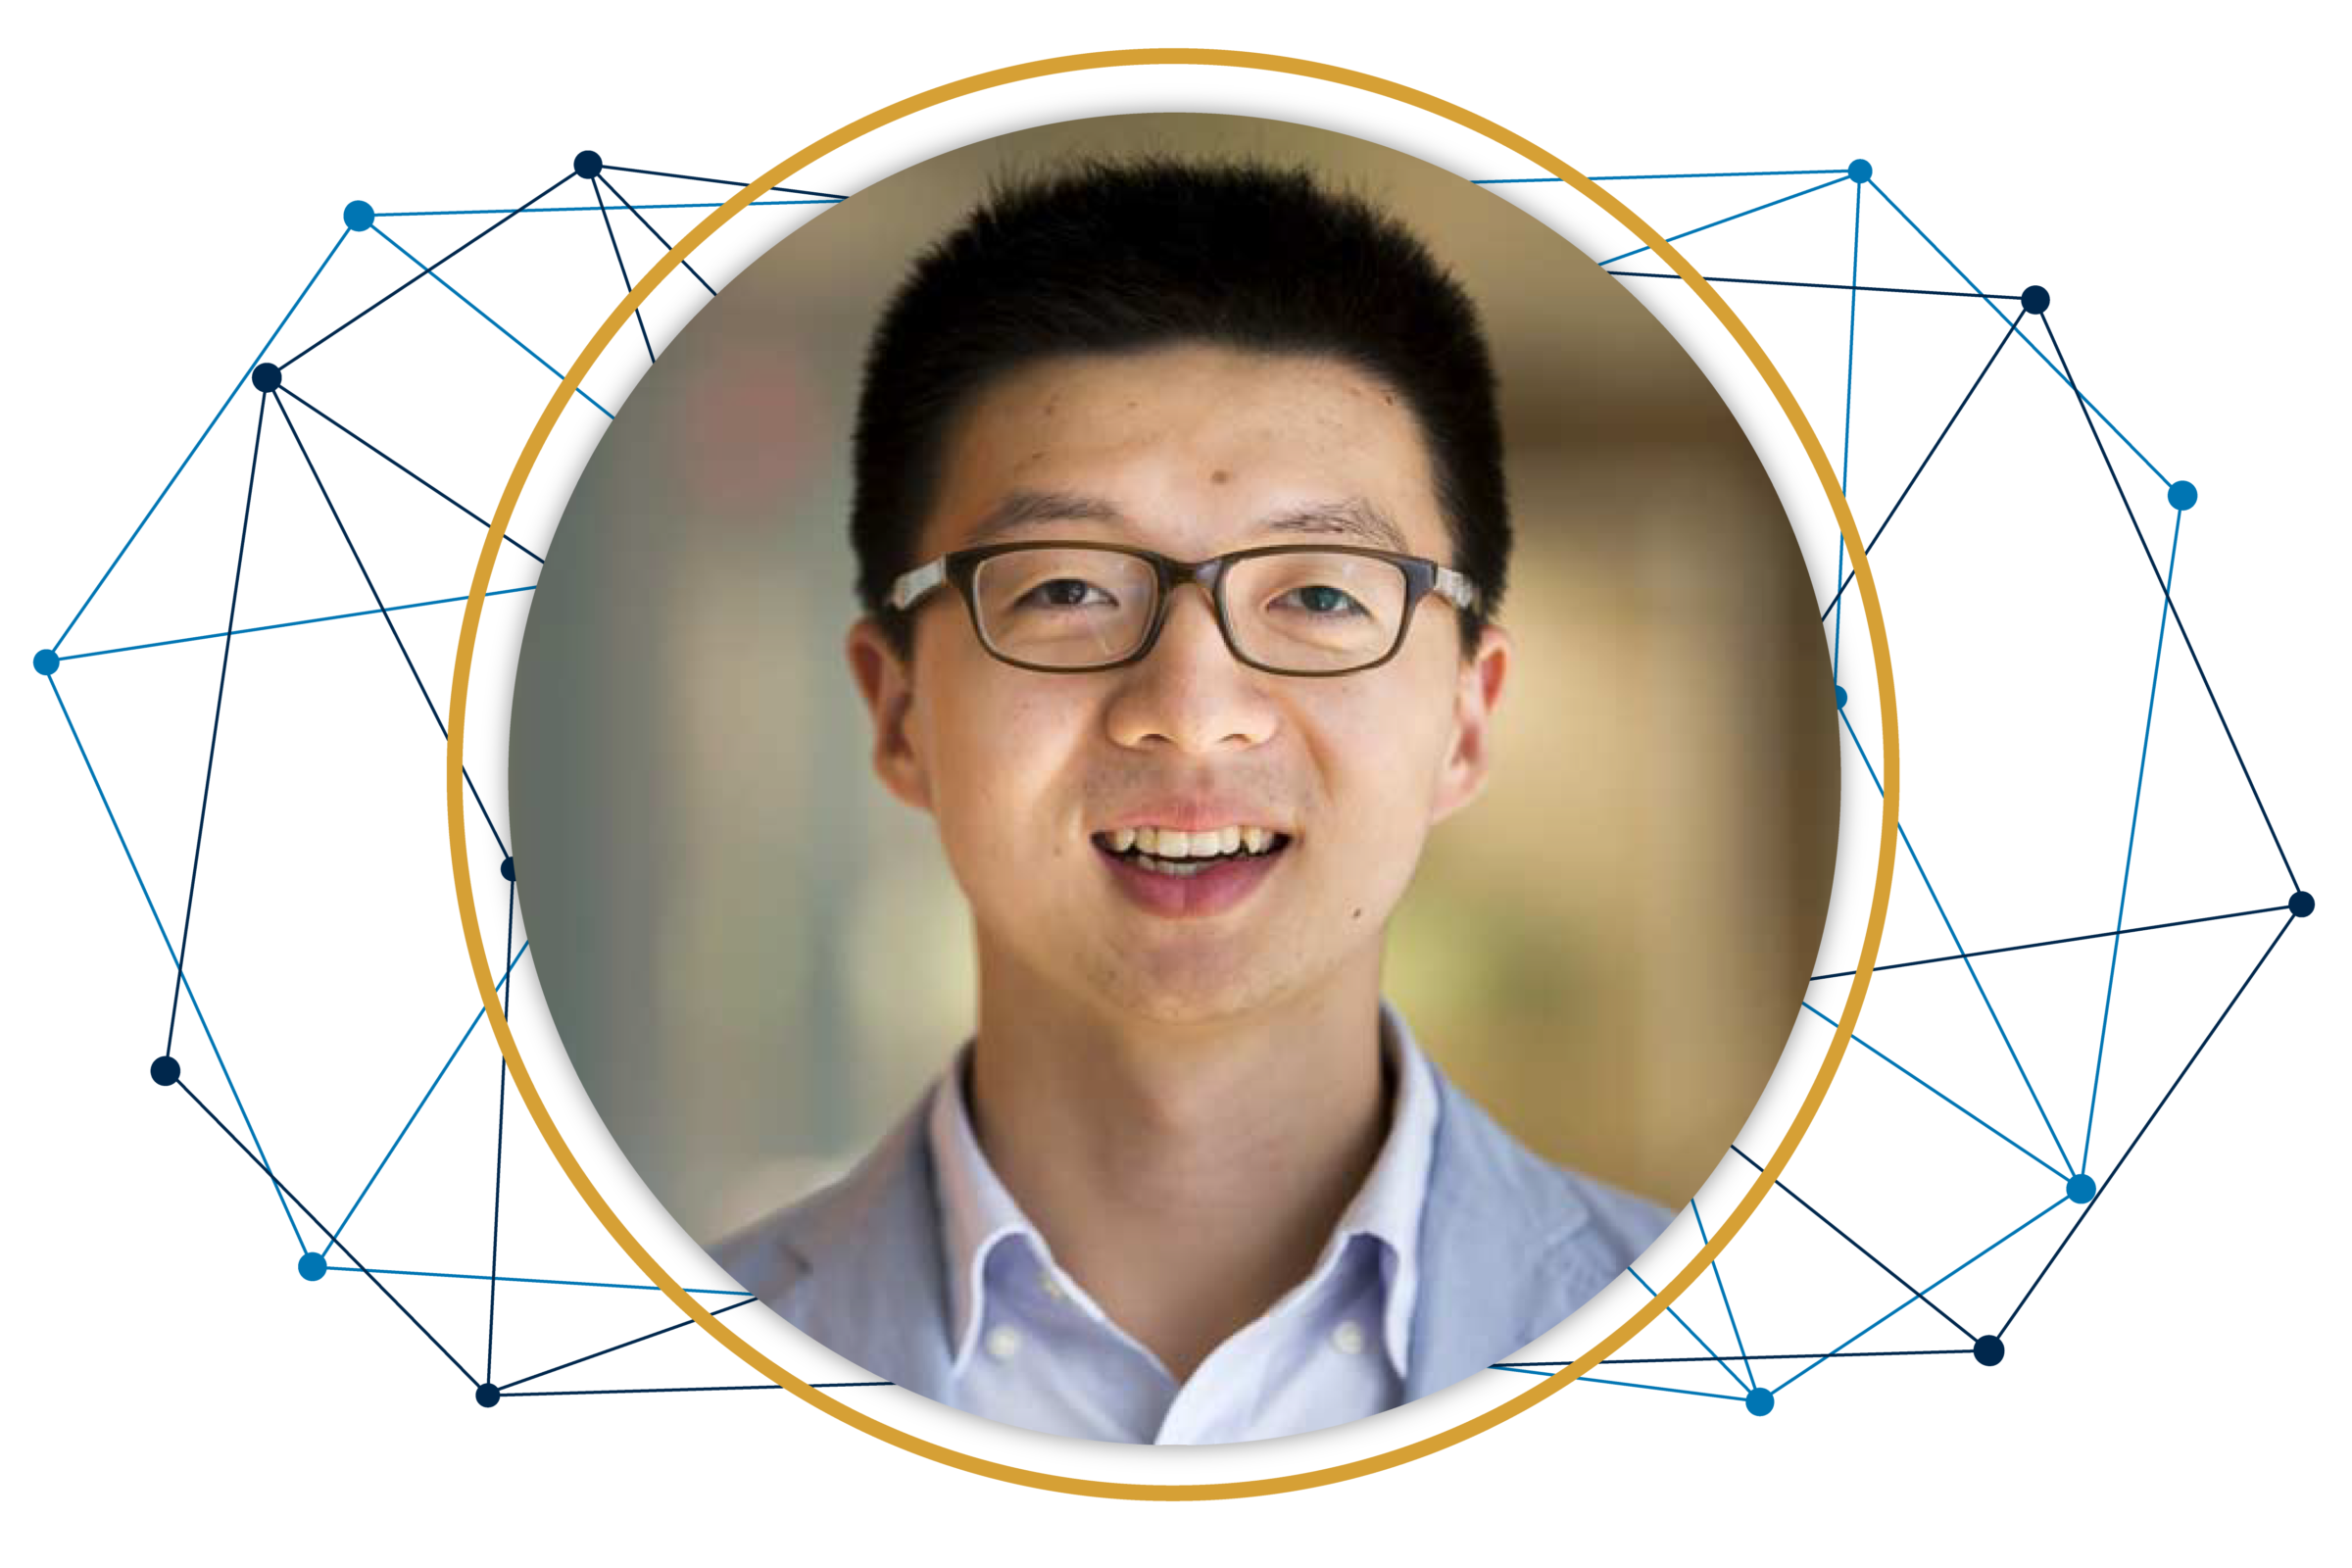 Qi Luo receives INFORMS-Sim best student paper award